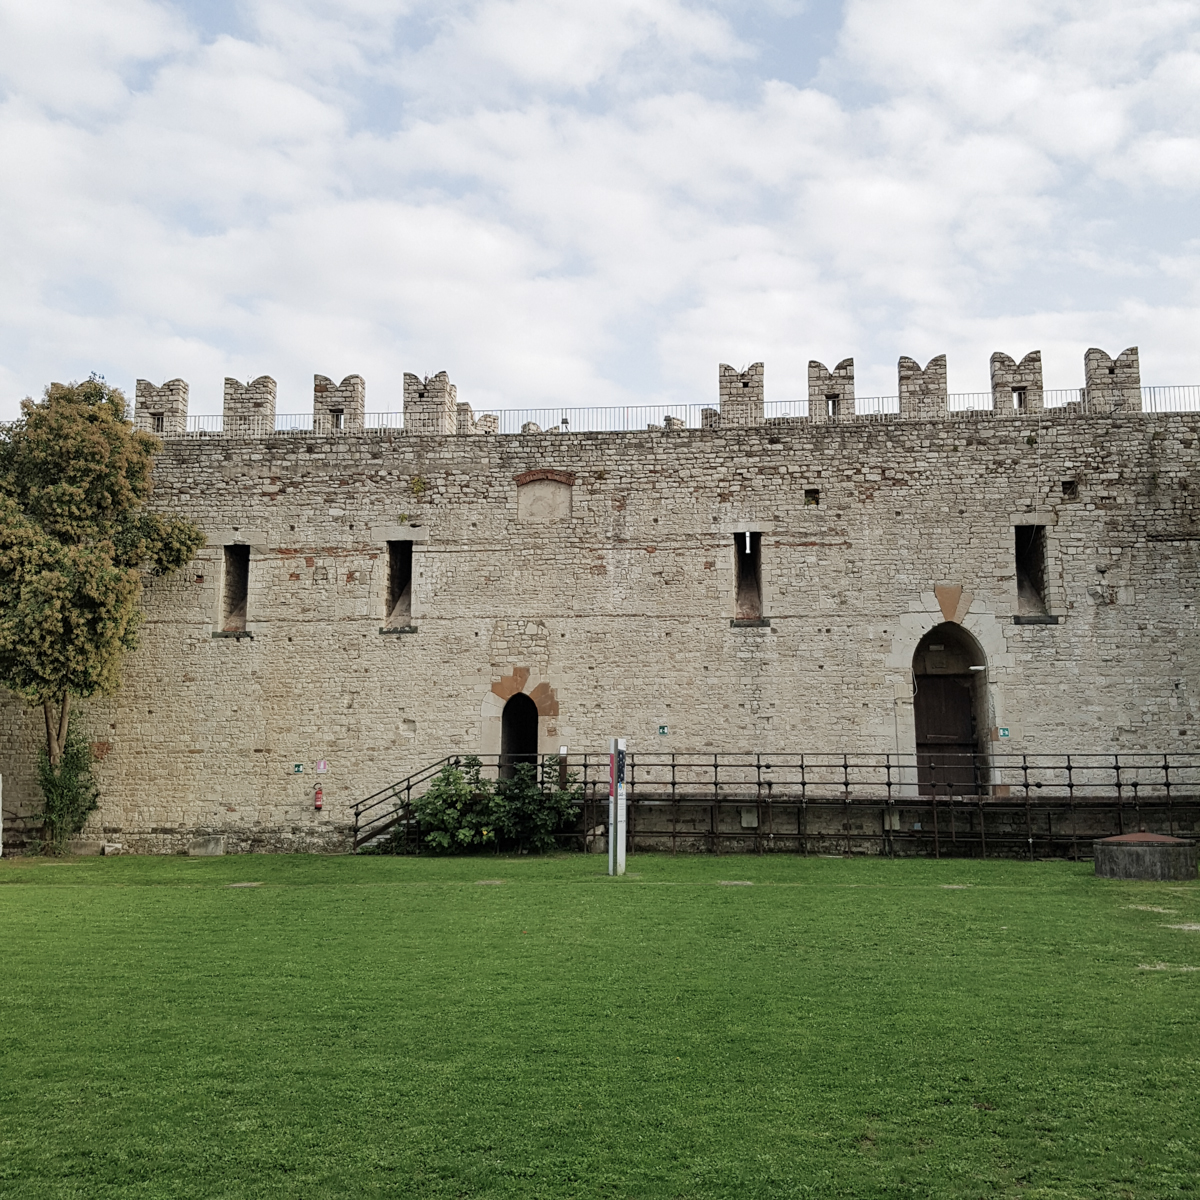 Prato-by-Style-and-Trouble-007-Castello-Imperatore